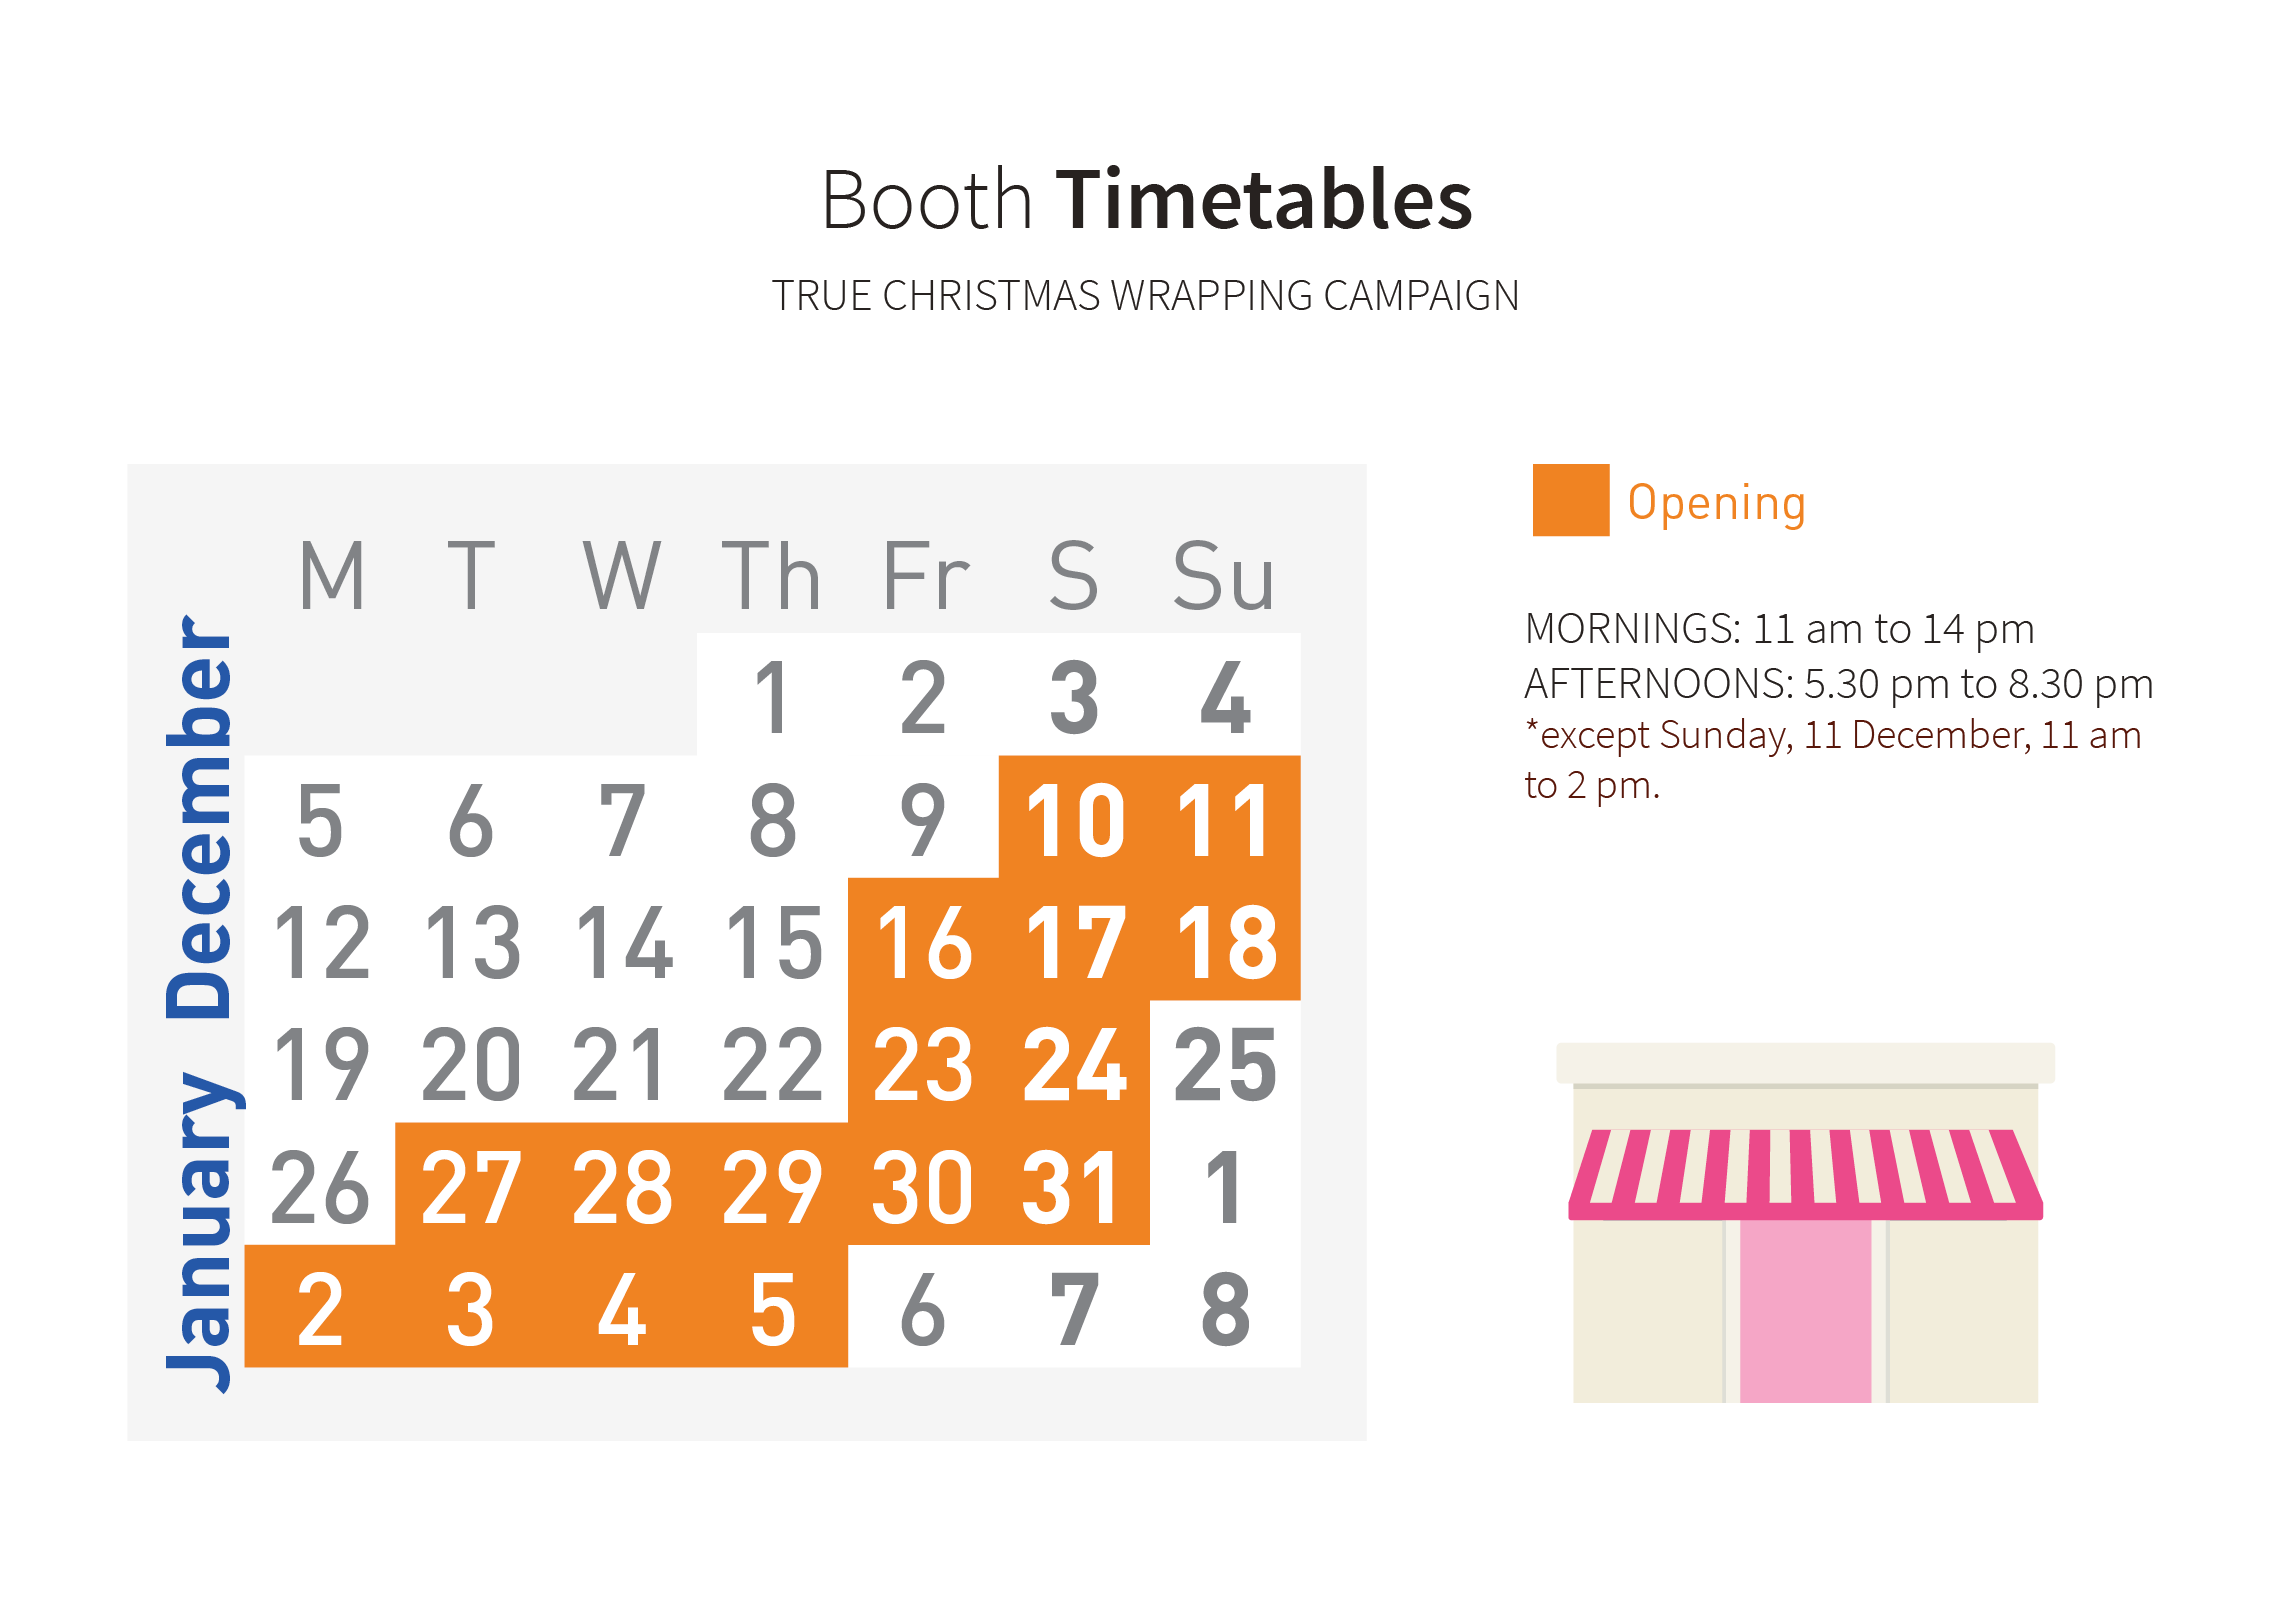 Booth Timetables